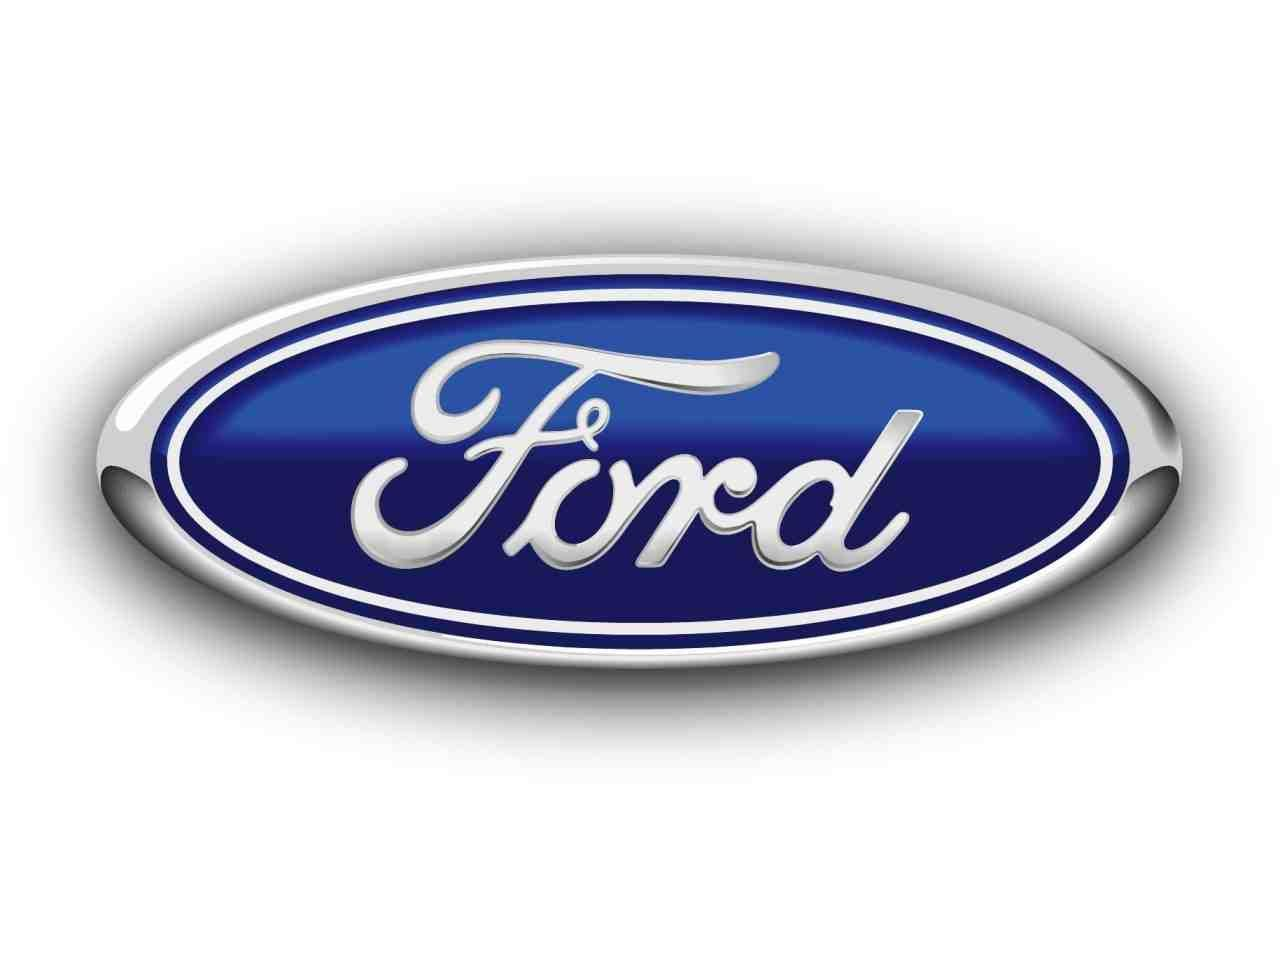 Breaking Hindi News India News Latest News Headlines World News In Hindi Hindi News Paper Ford Logo Ford Motor Company Ford Motor